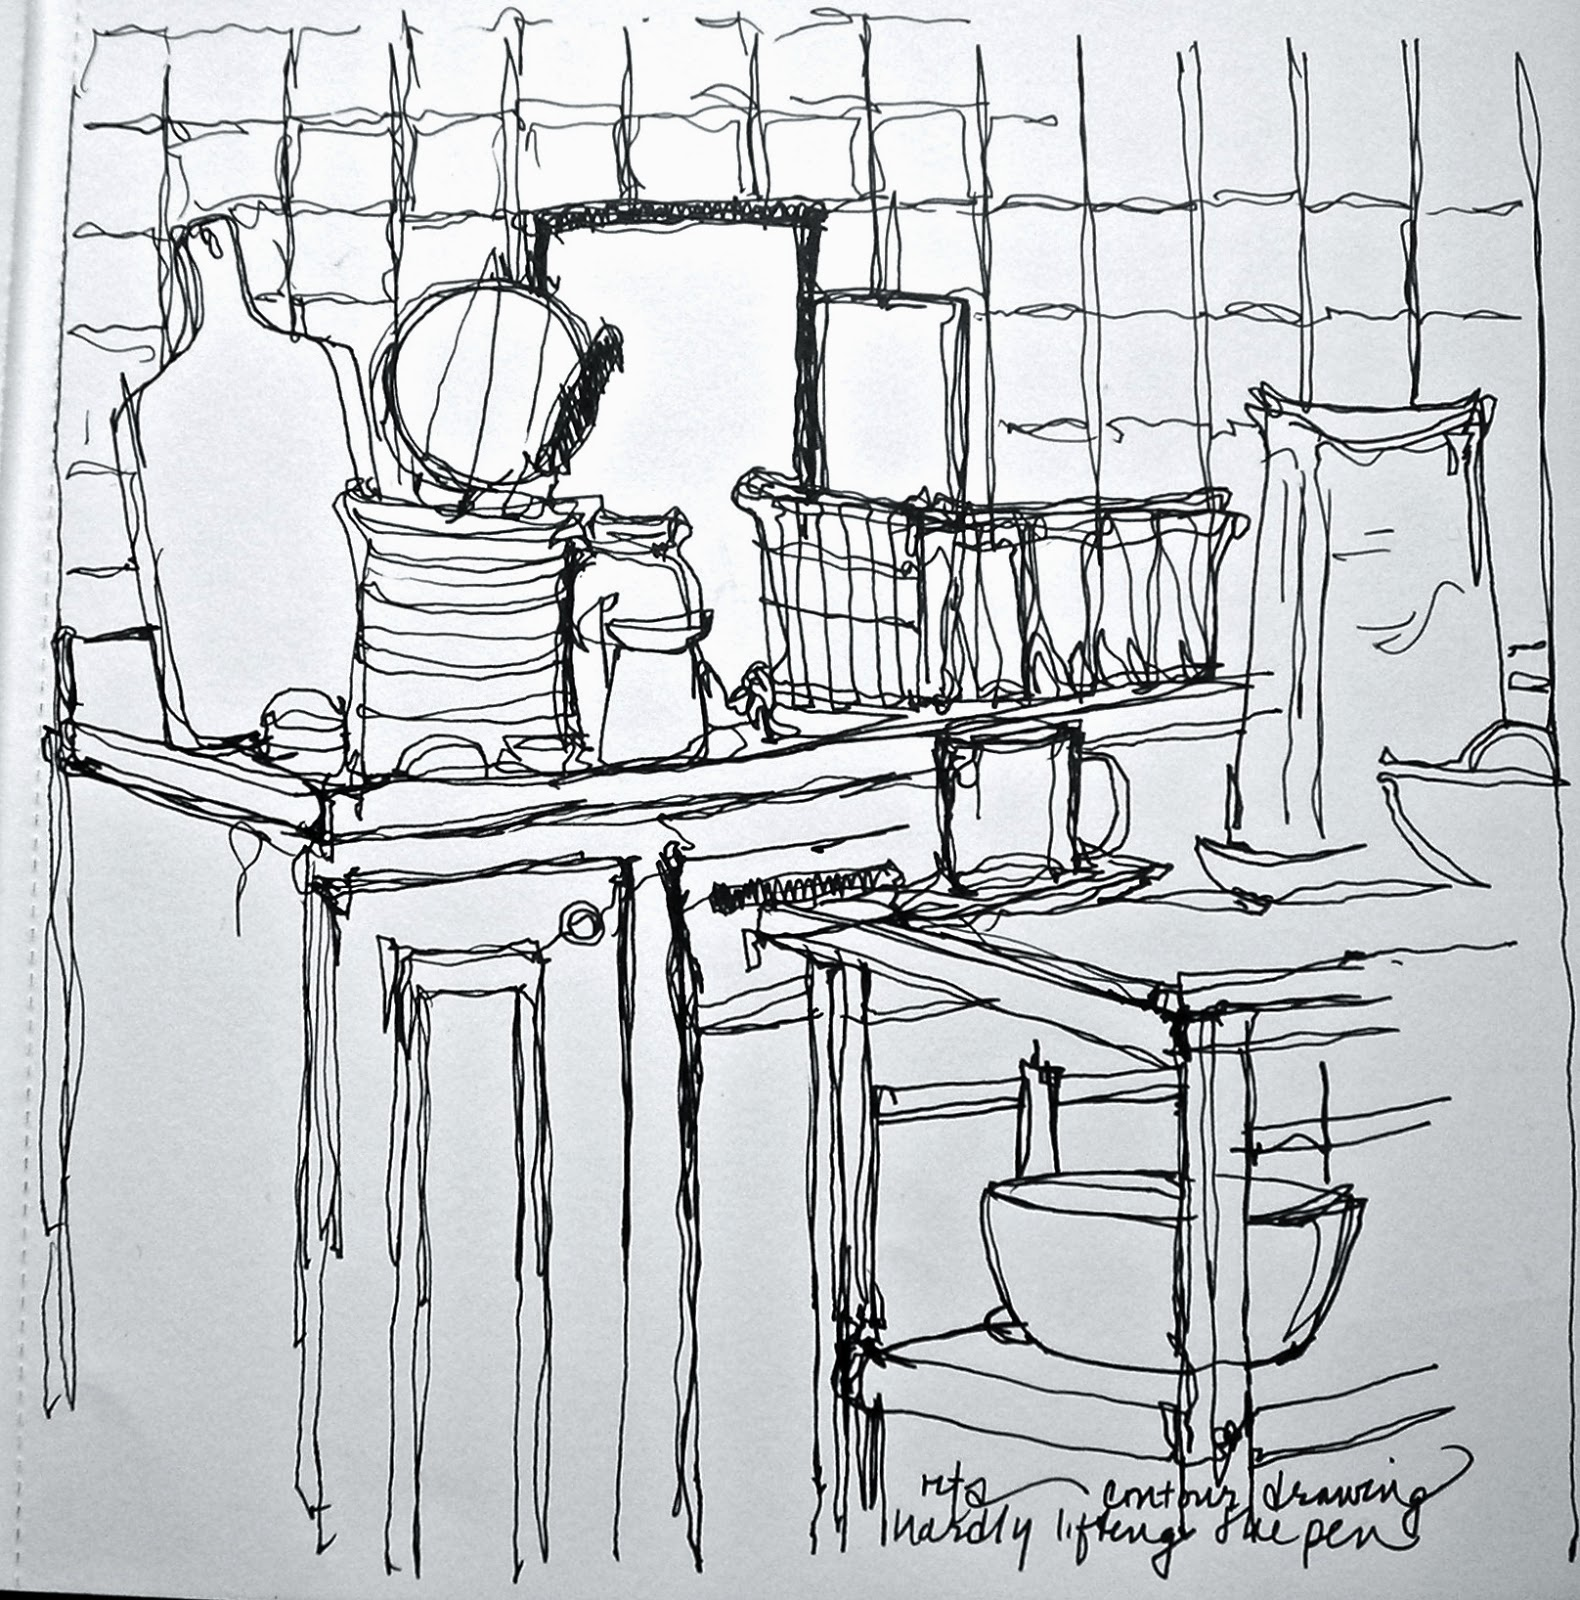 Sketchbook Wandering Continuous Line Contour Drawing